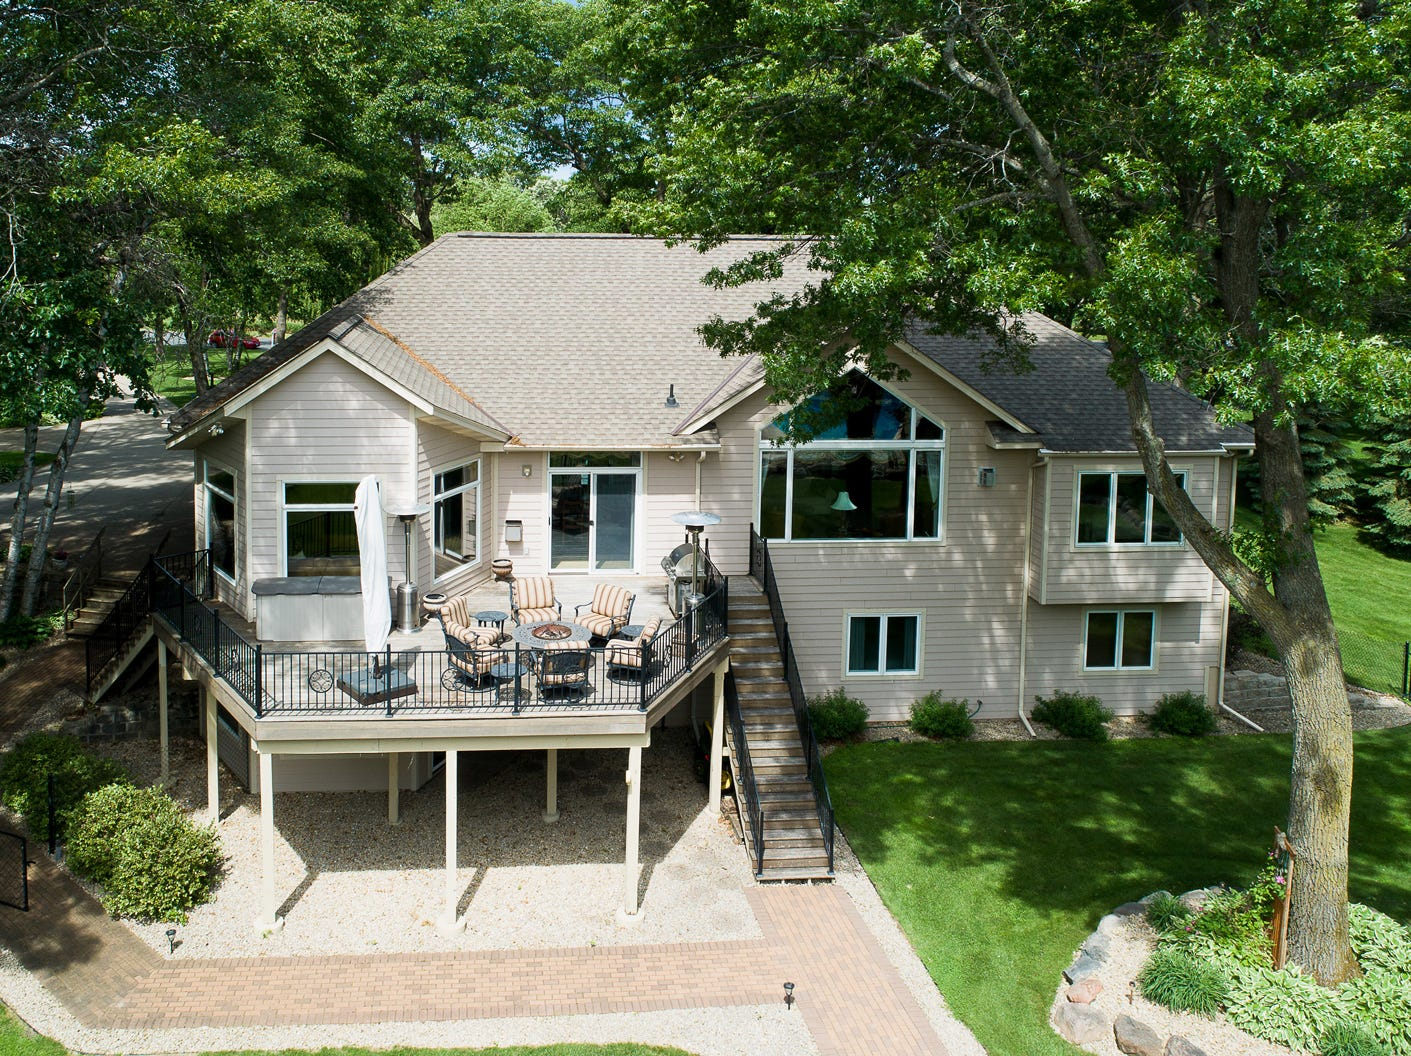 Surrounded by rock gardens and gorgeous landscaping, the property's spacious backyard patio and heated pool are sure to be a hub for all kinds of activity.